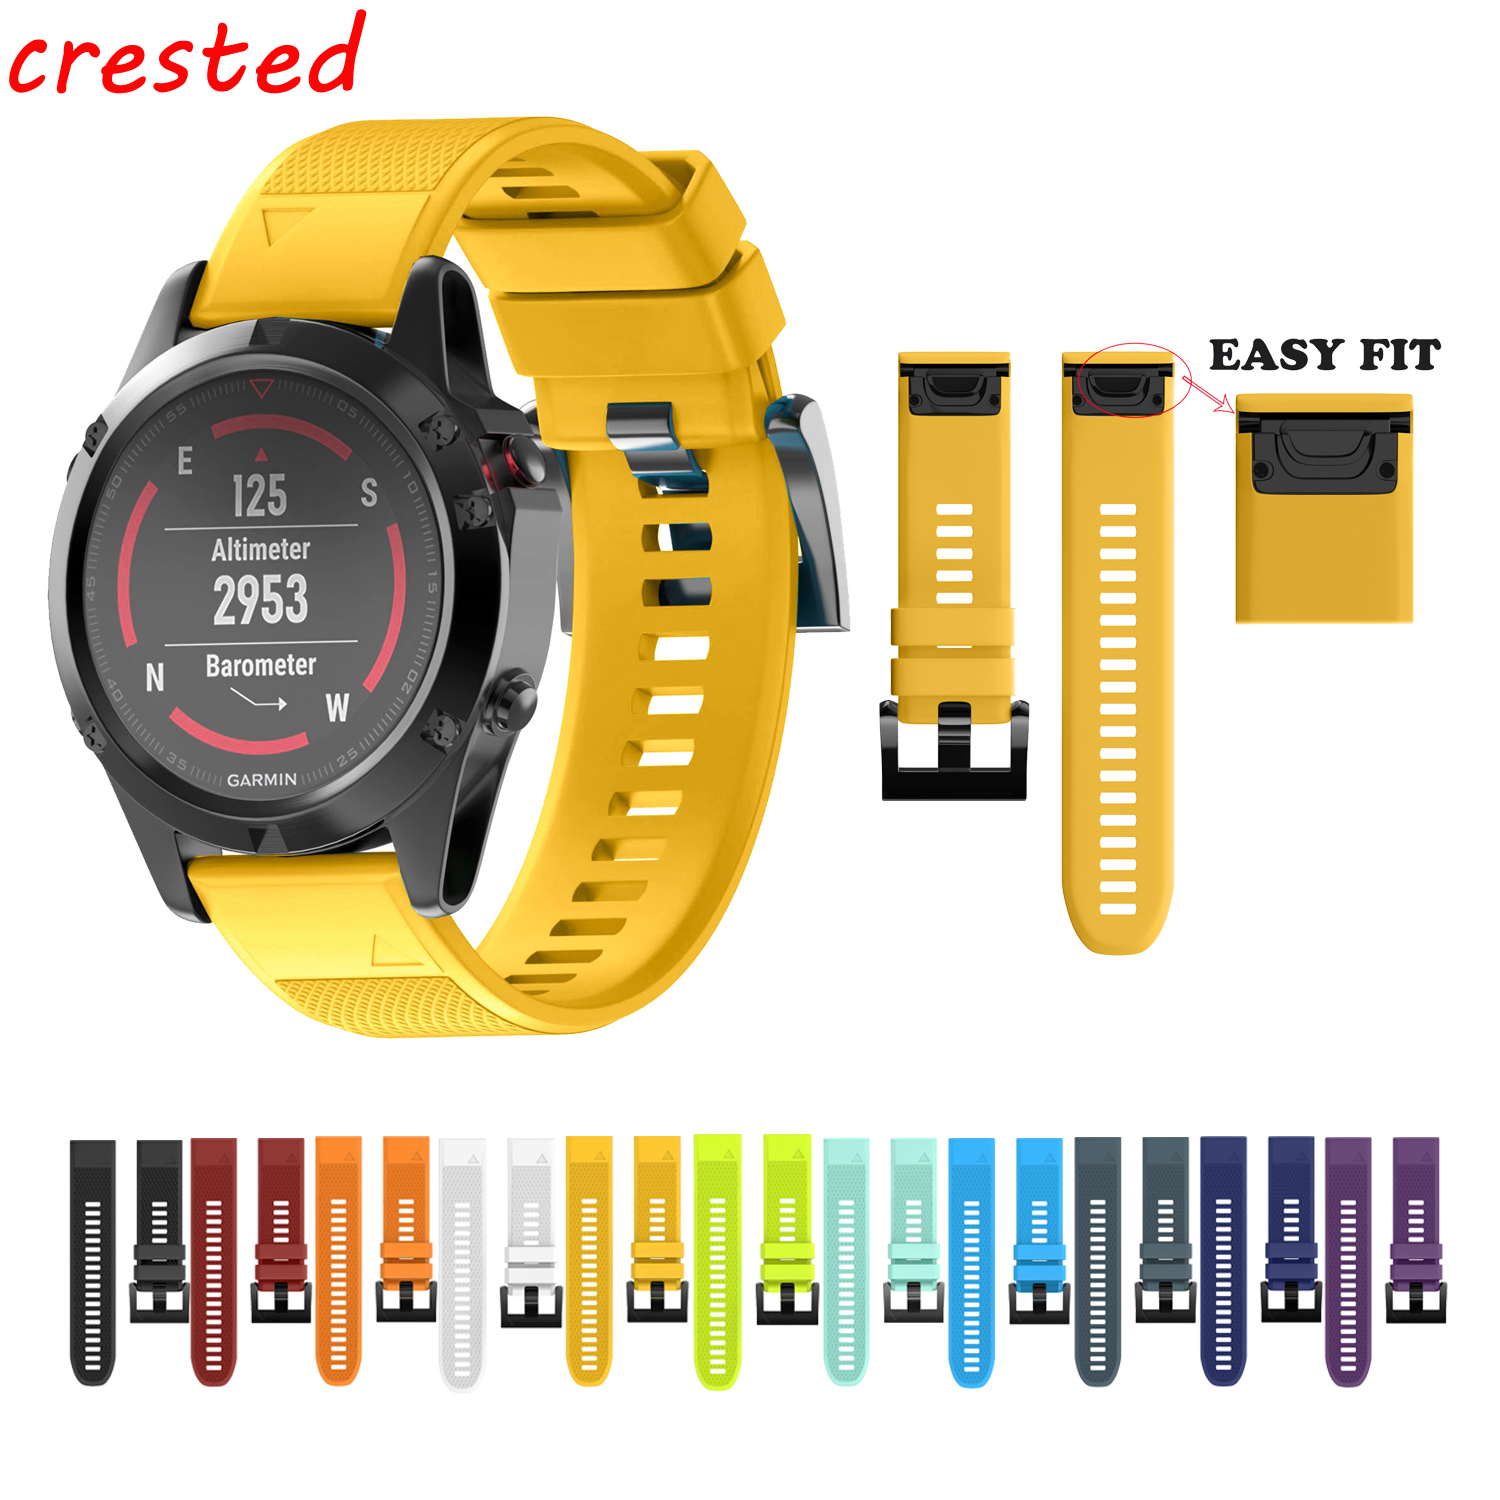 CRESTED silicone watch strap for Garmin Fenix 5 band GPS Watches Replacement band Silicagel Wrist Band Bracelet soft adjustable silicone replacement wrist watch band for garmin forerunner 920xt gps watch black